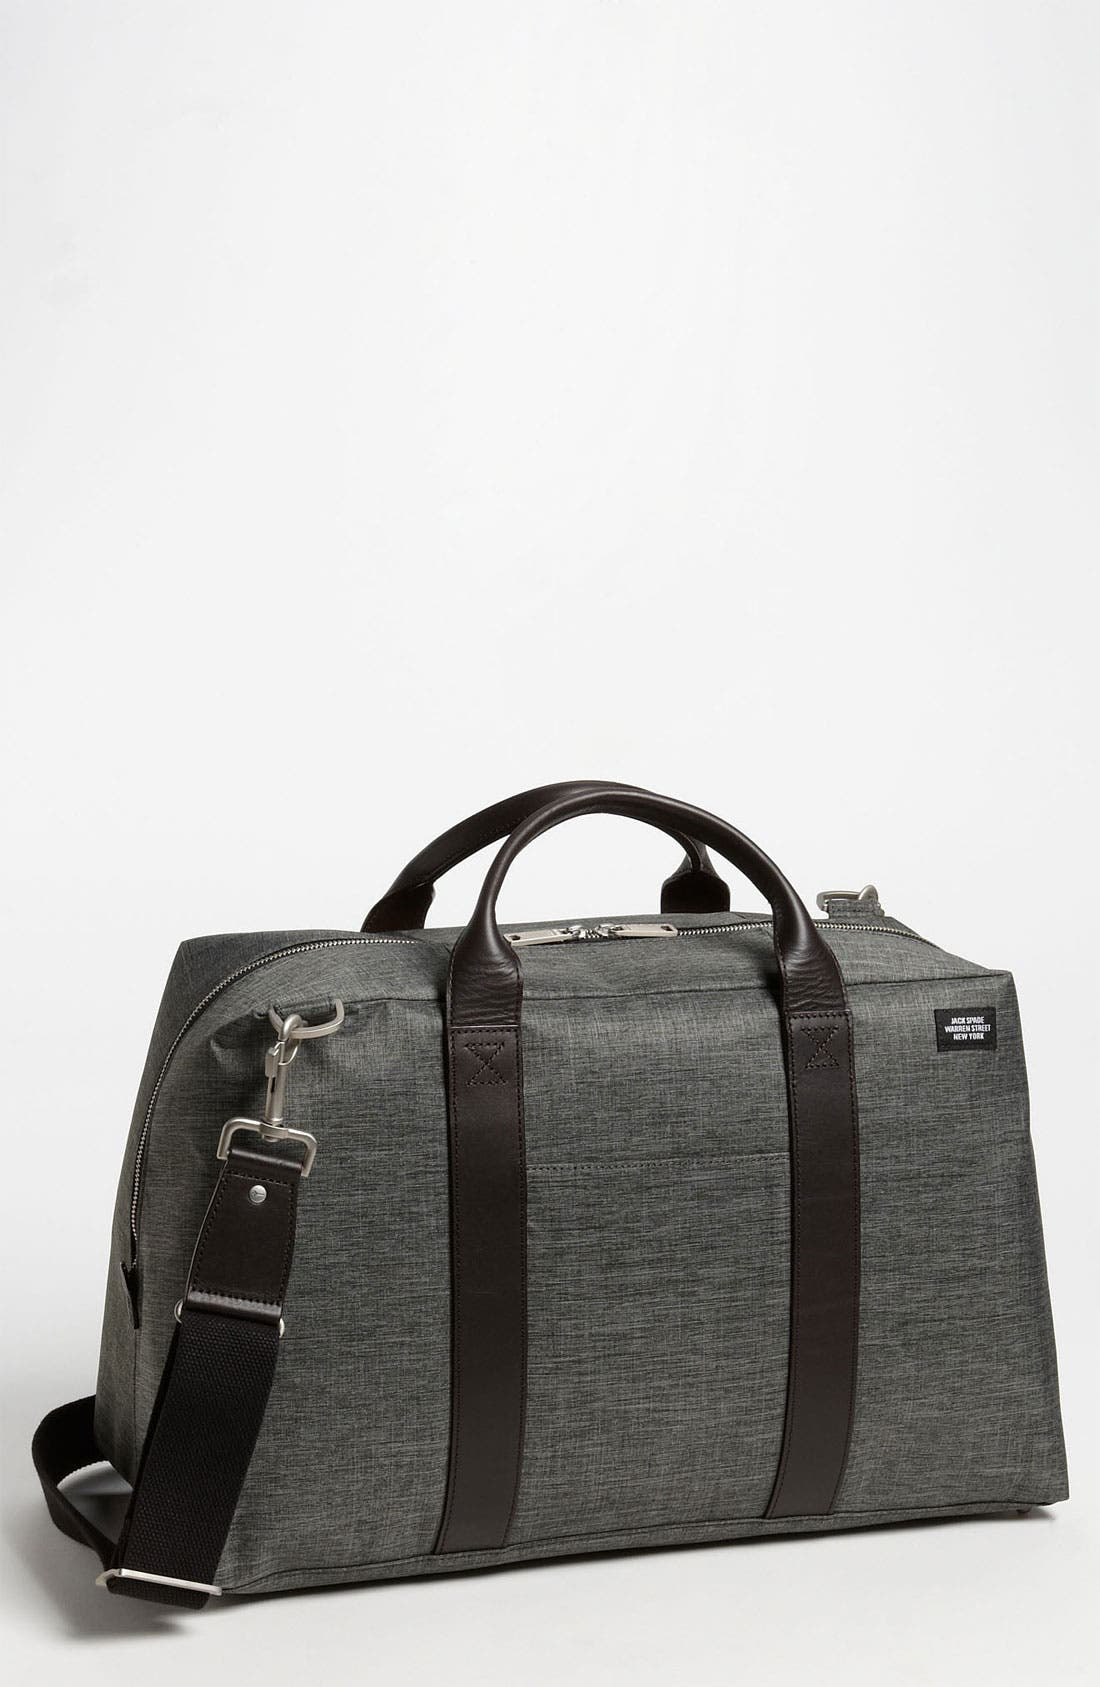 Alternate Image 1 Selected - Jack Spade 'Wayne' Duffel Bag